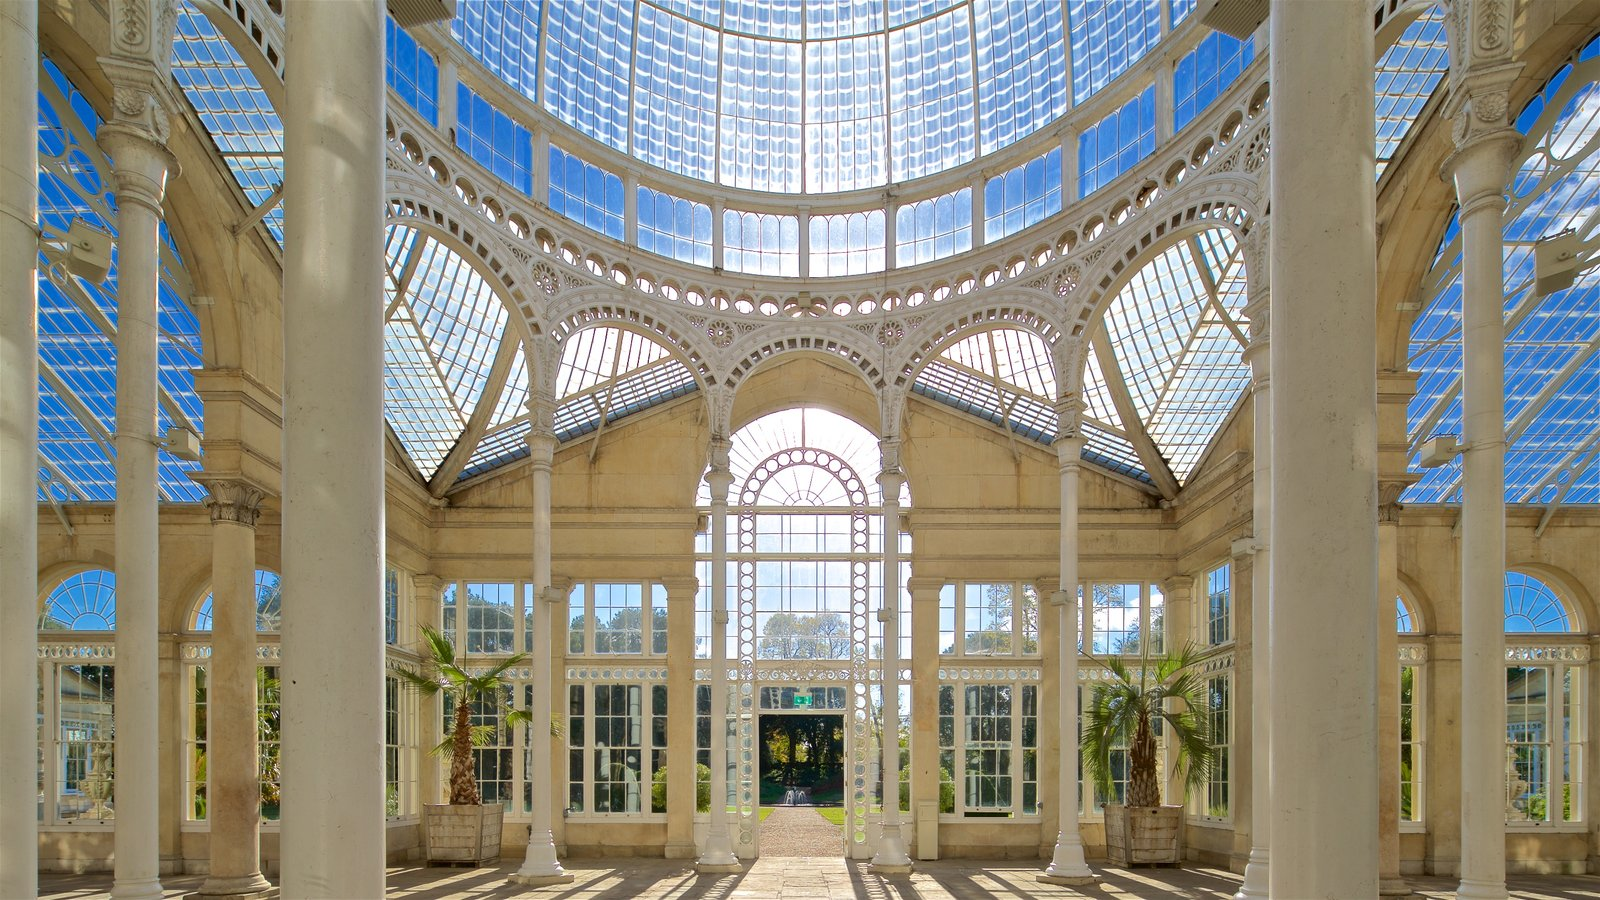 Syon Park which includes heritage elements and interior views